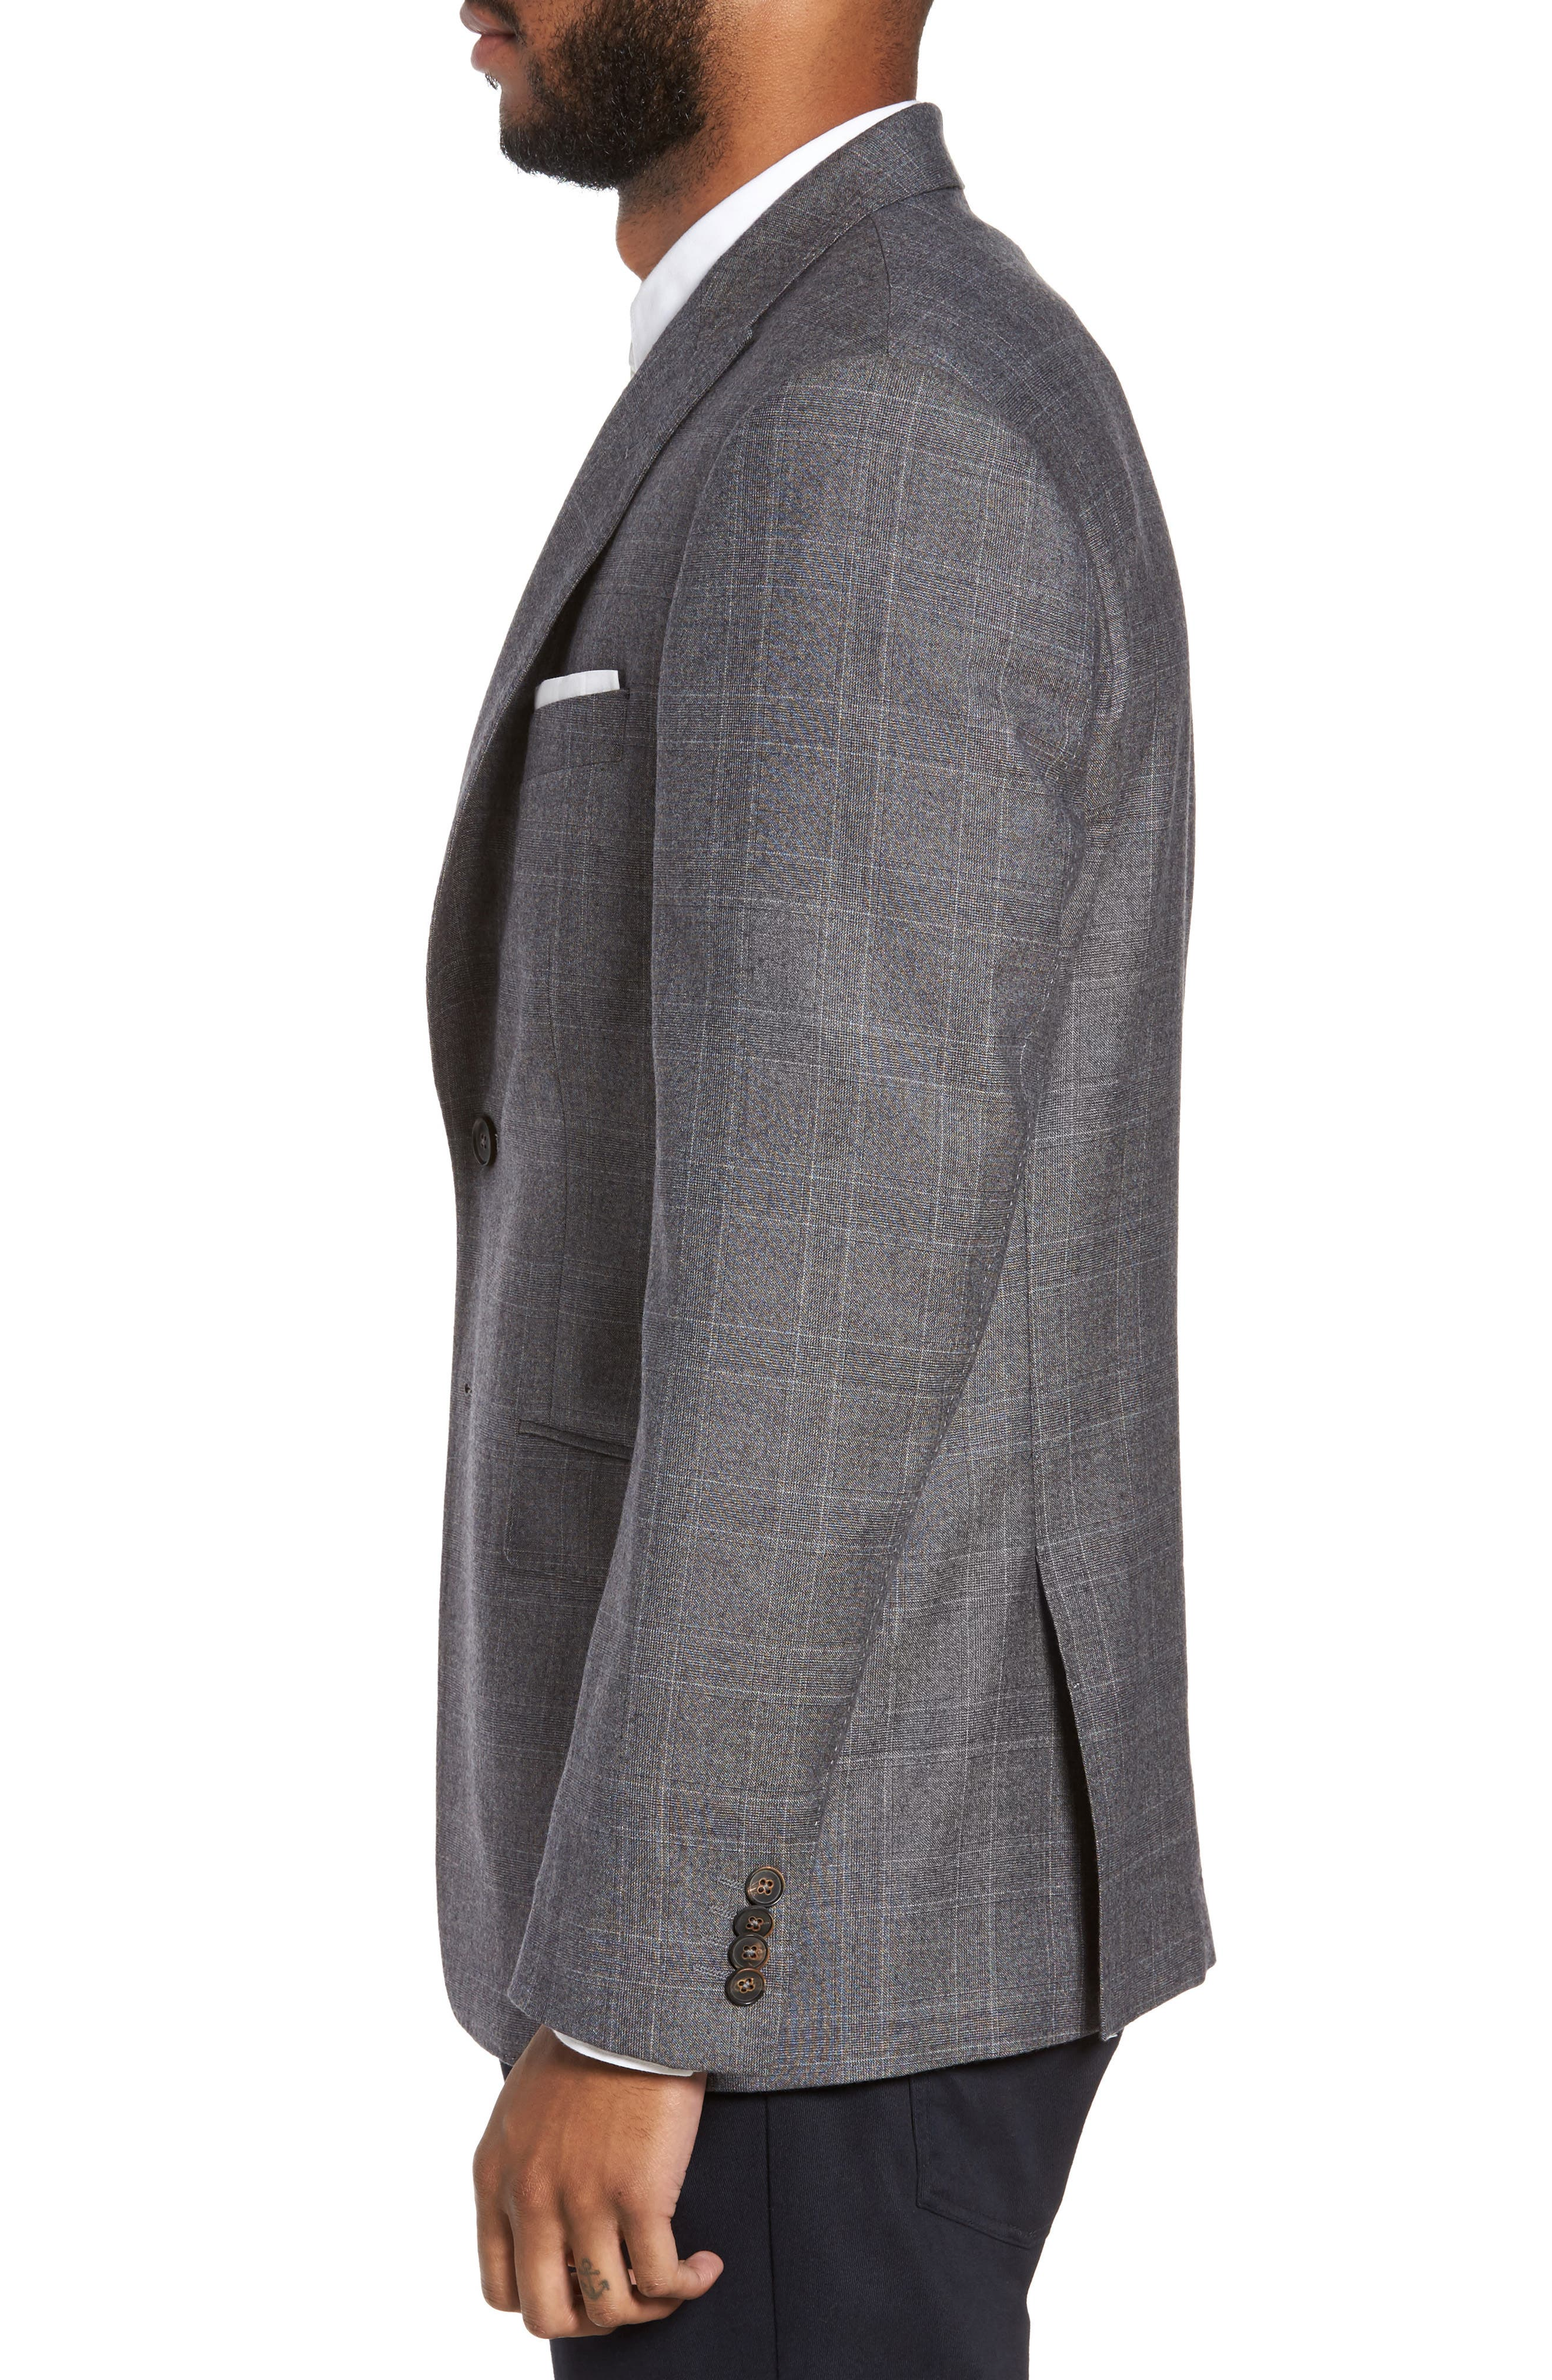 Gryning Trim Fit Plaid Wool Blend Sport Coat,                             Alternate thumbnail 3, color,                             Quiet Gray